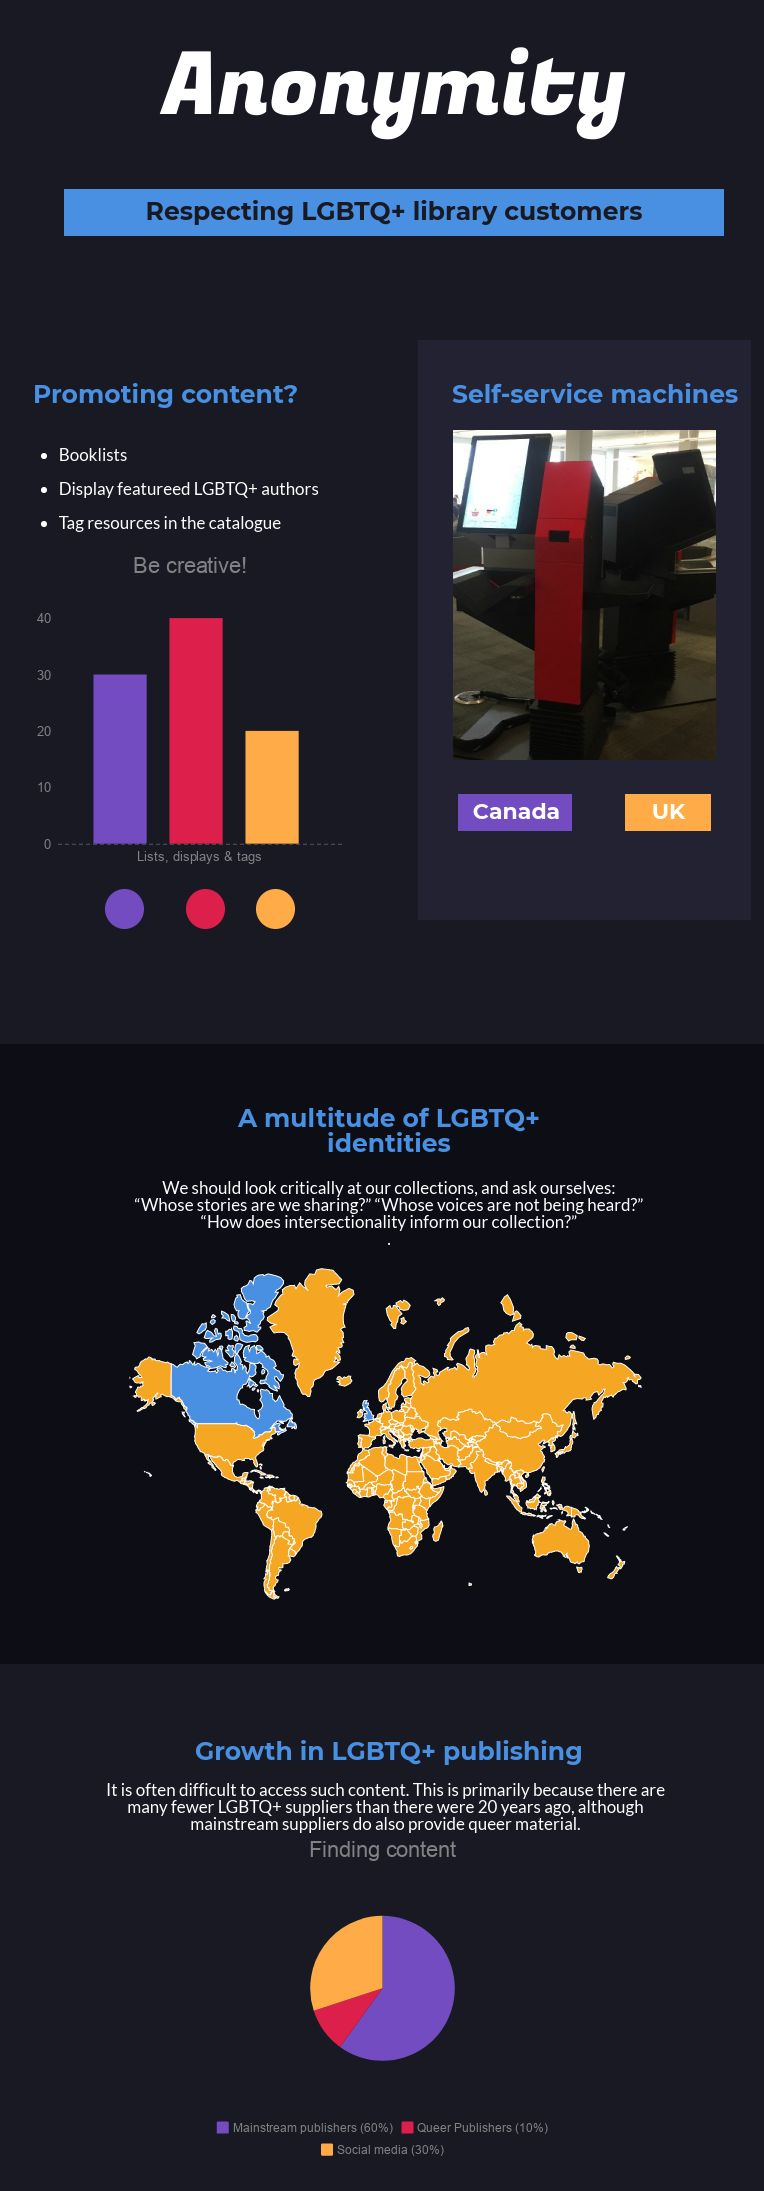 Infographic of ideas for respecting the anonymity of LGBTQ+ customers